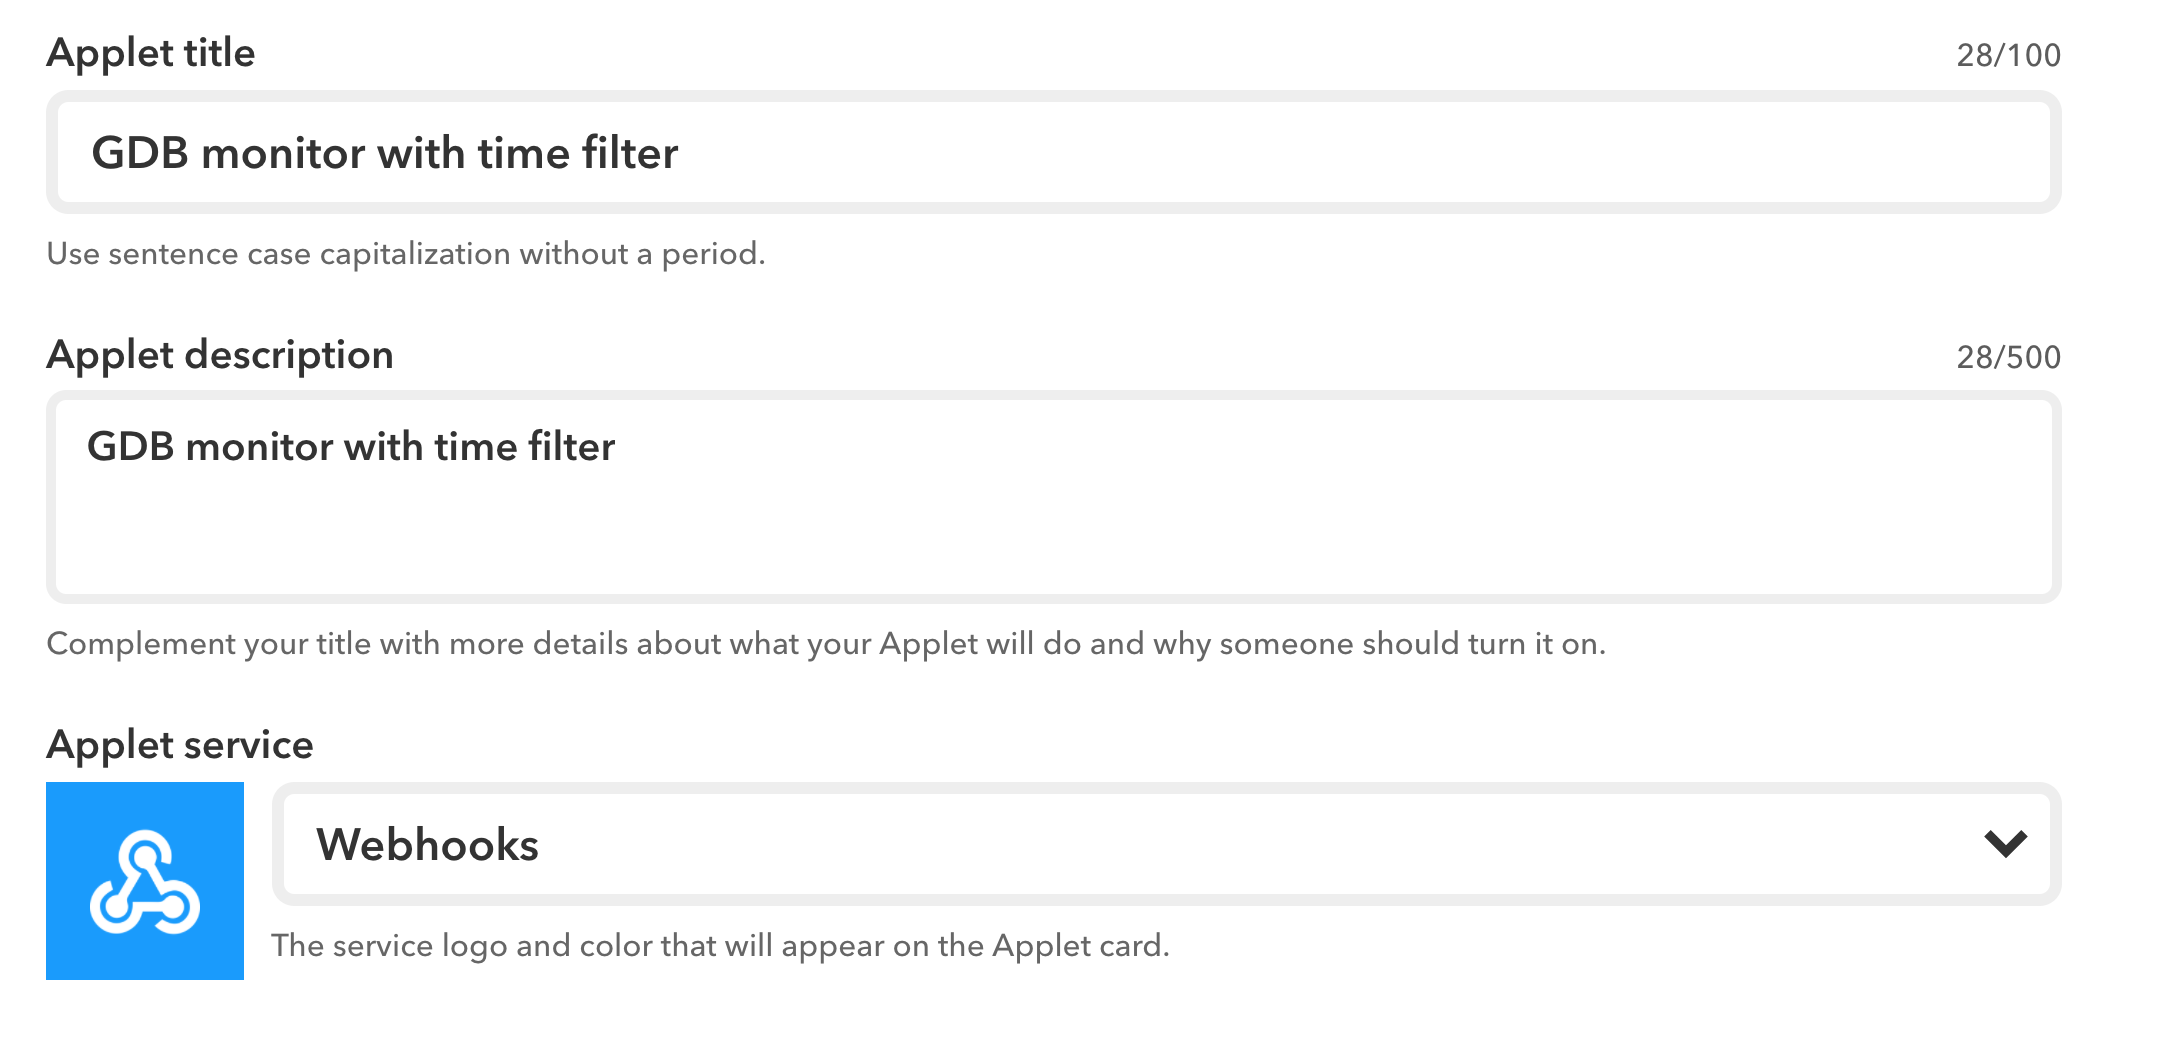 Use IFTTT to enable notification based on date/time for the